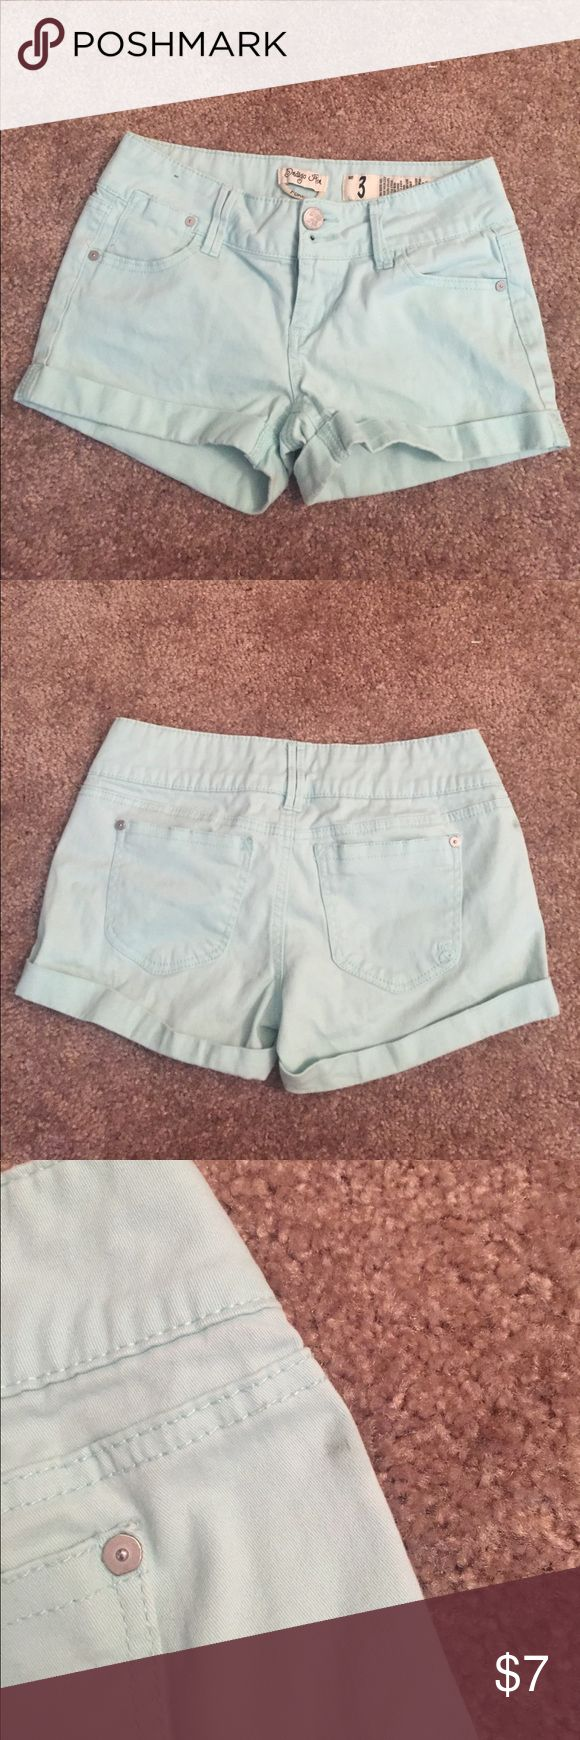 Aqua Shorts Super cute and comfy! Small imperfections shown in pictures (probably a wash will fix!) Shorts Cargos